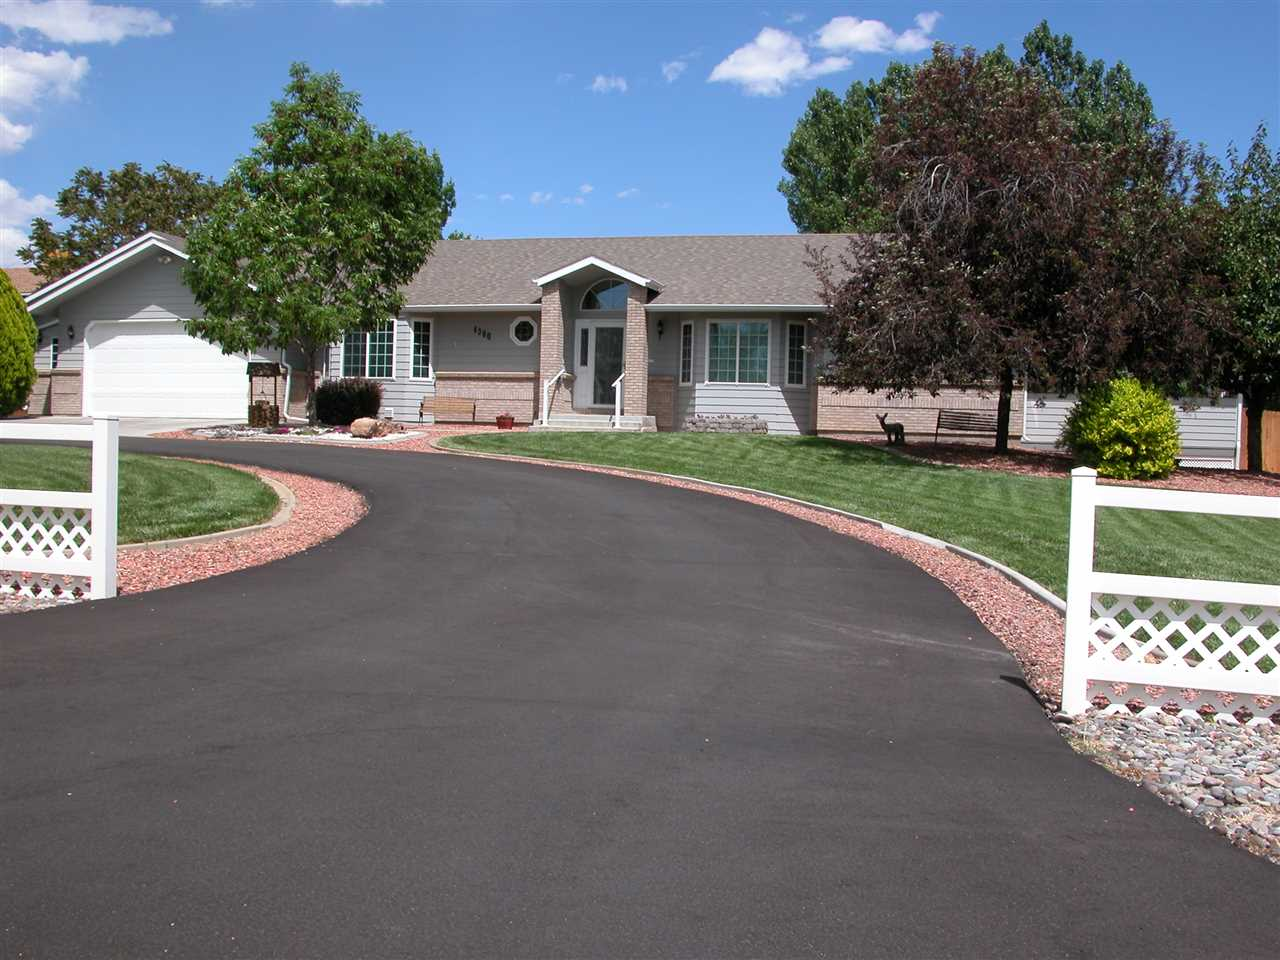 4300 27 1/2 Court, Grand Junction, CO 81506